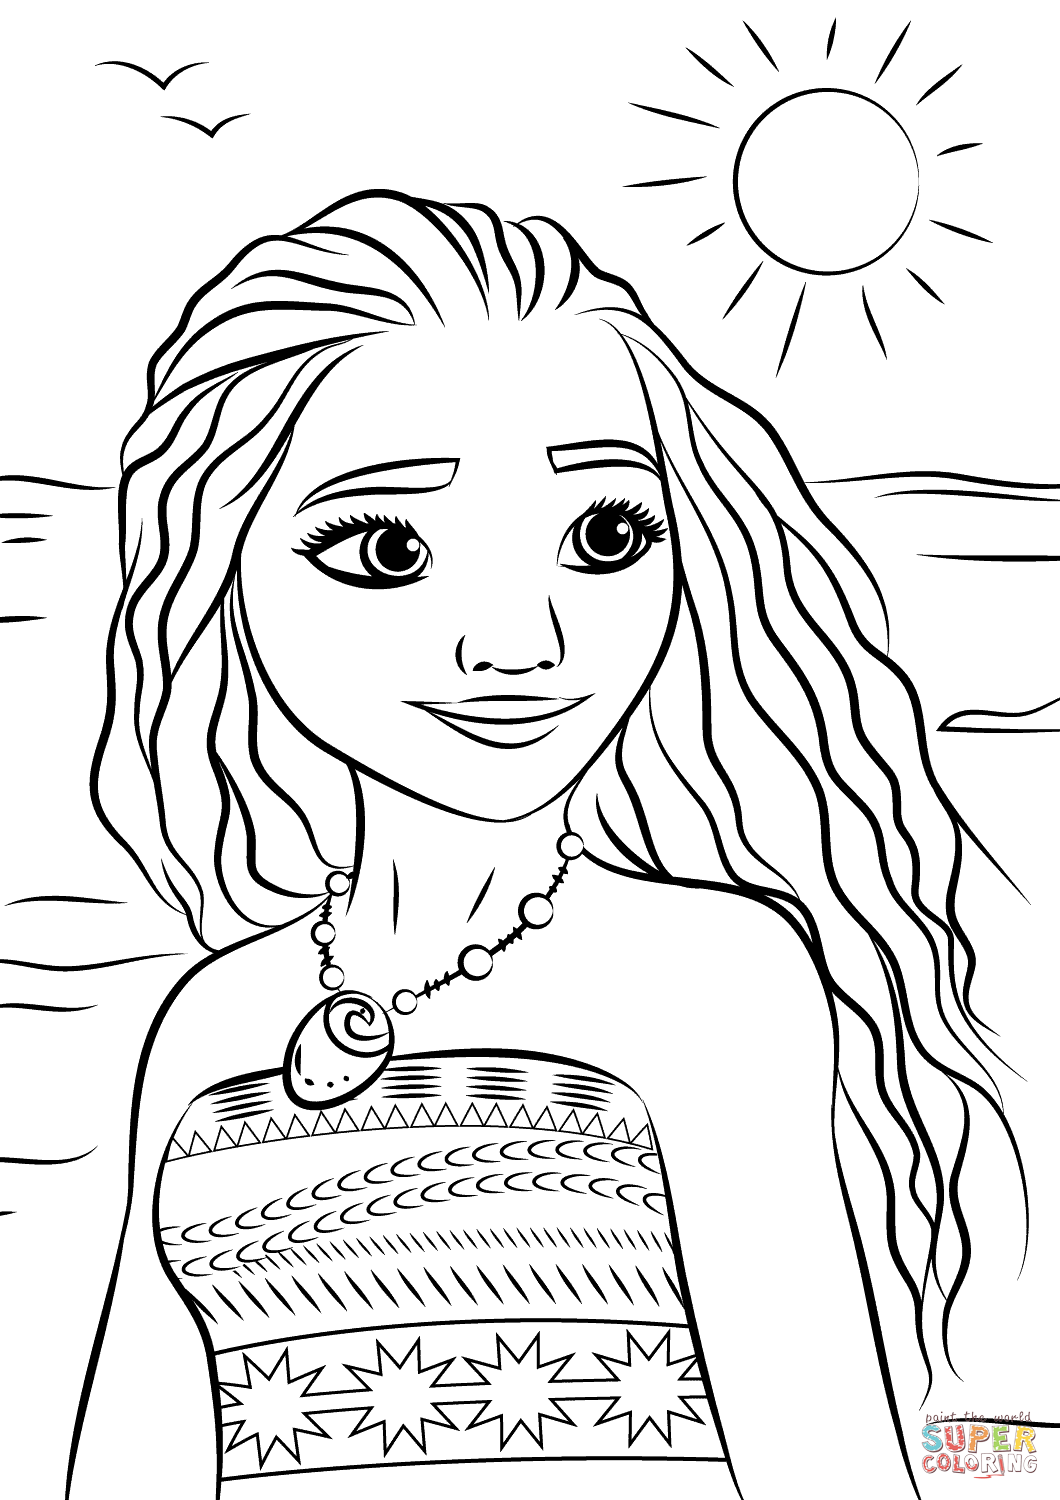 Princess Moana Portrait Coloring Page